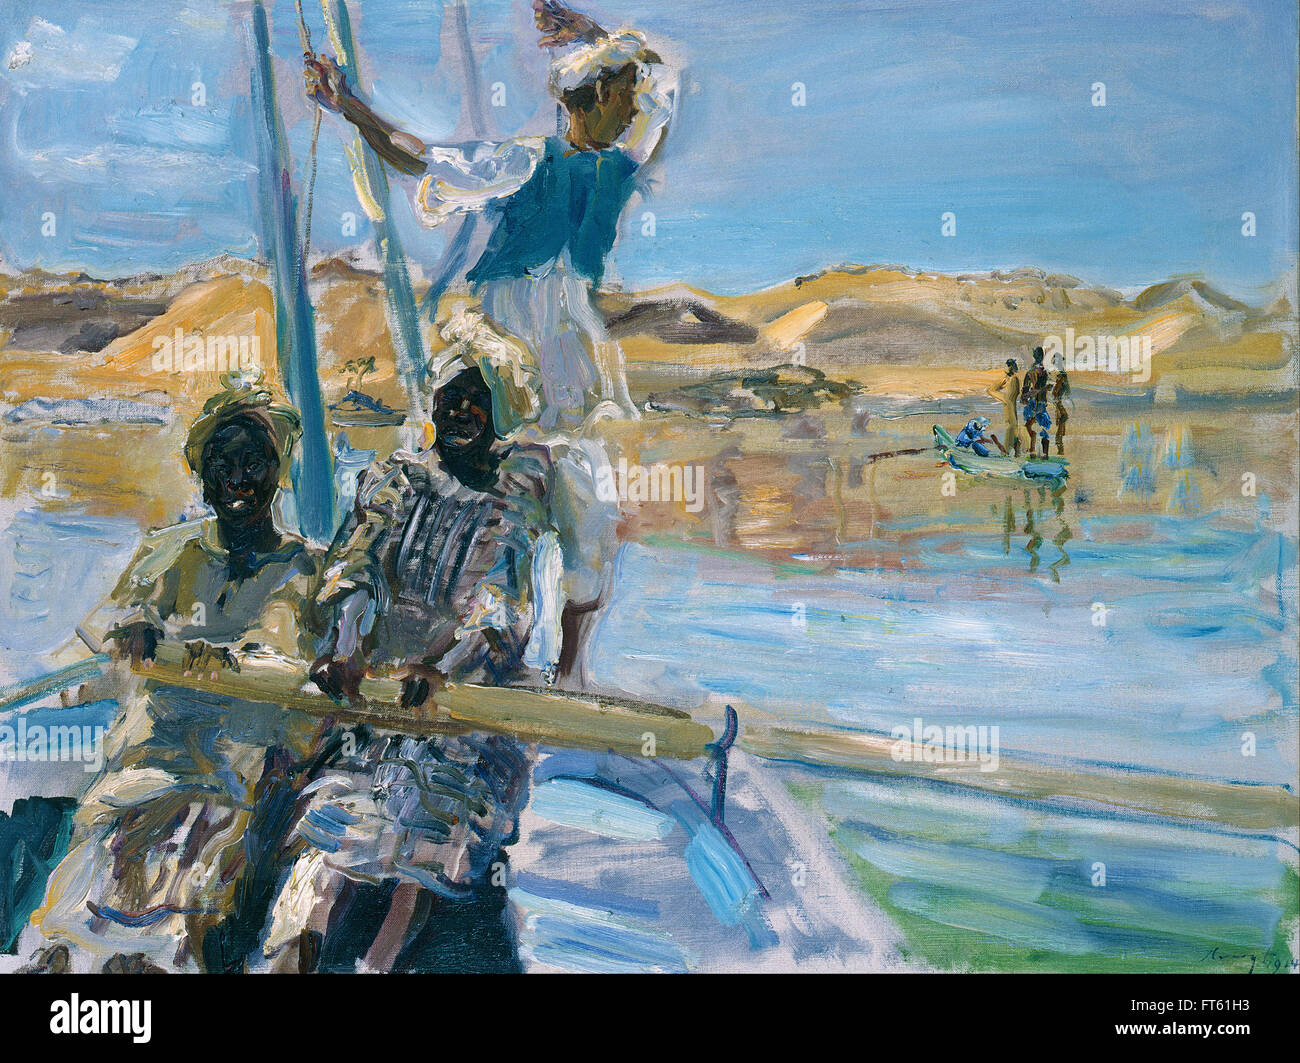 Max Slevogt - Pirates - Galerie Neue Meister – New Masters Gallery - Stock Image